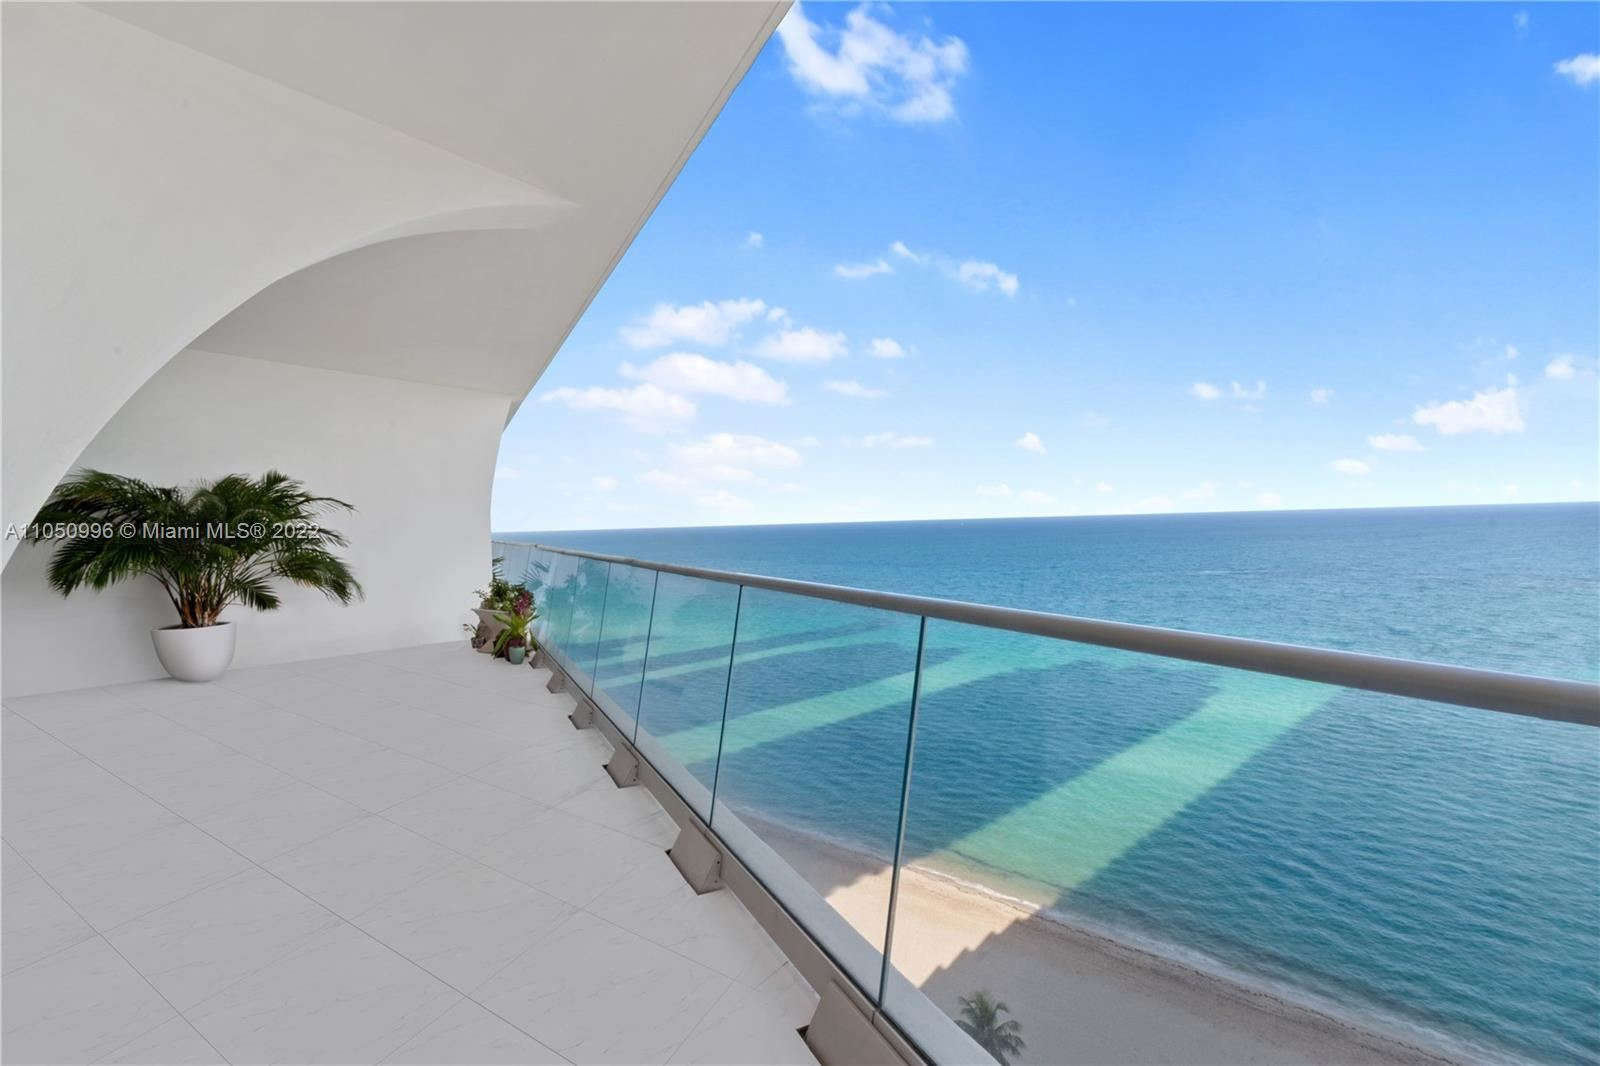 16901 Collins Ave #1702, Sunny Isles, FL 33160 - #: A11050996